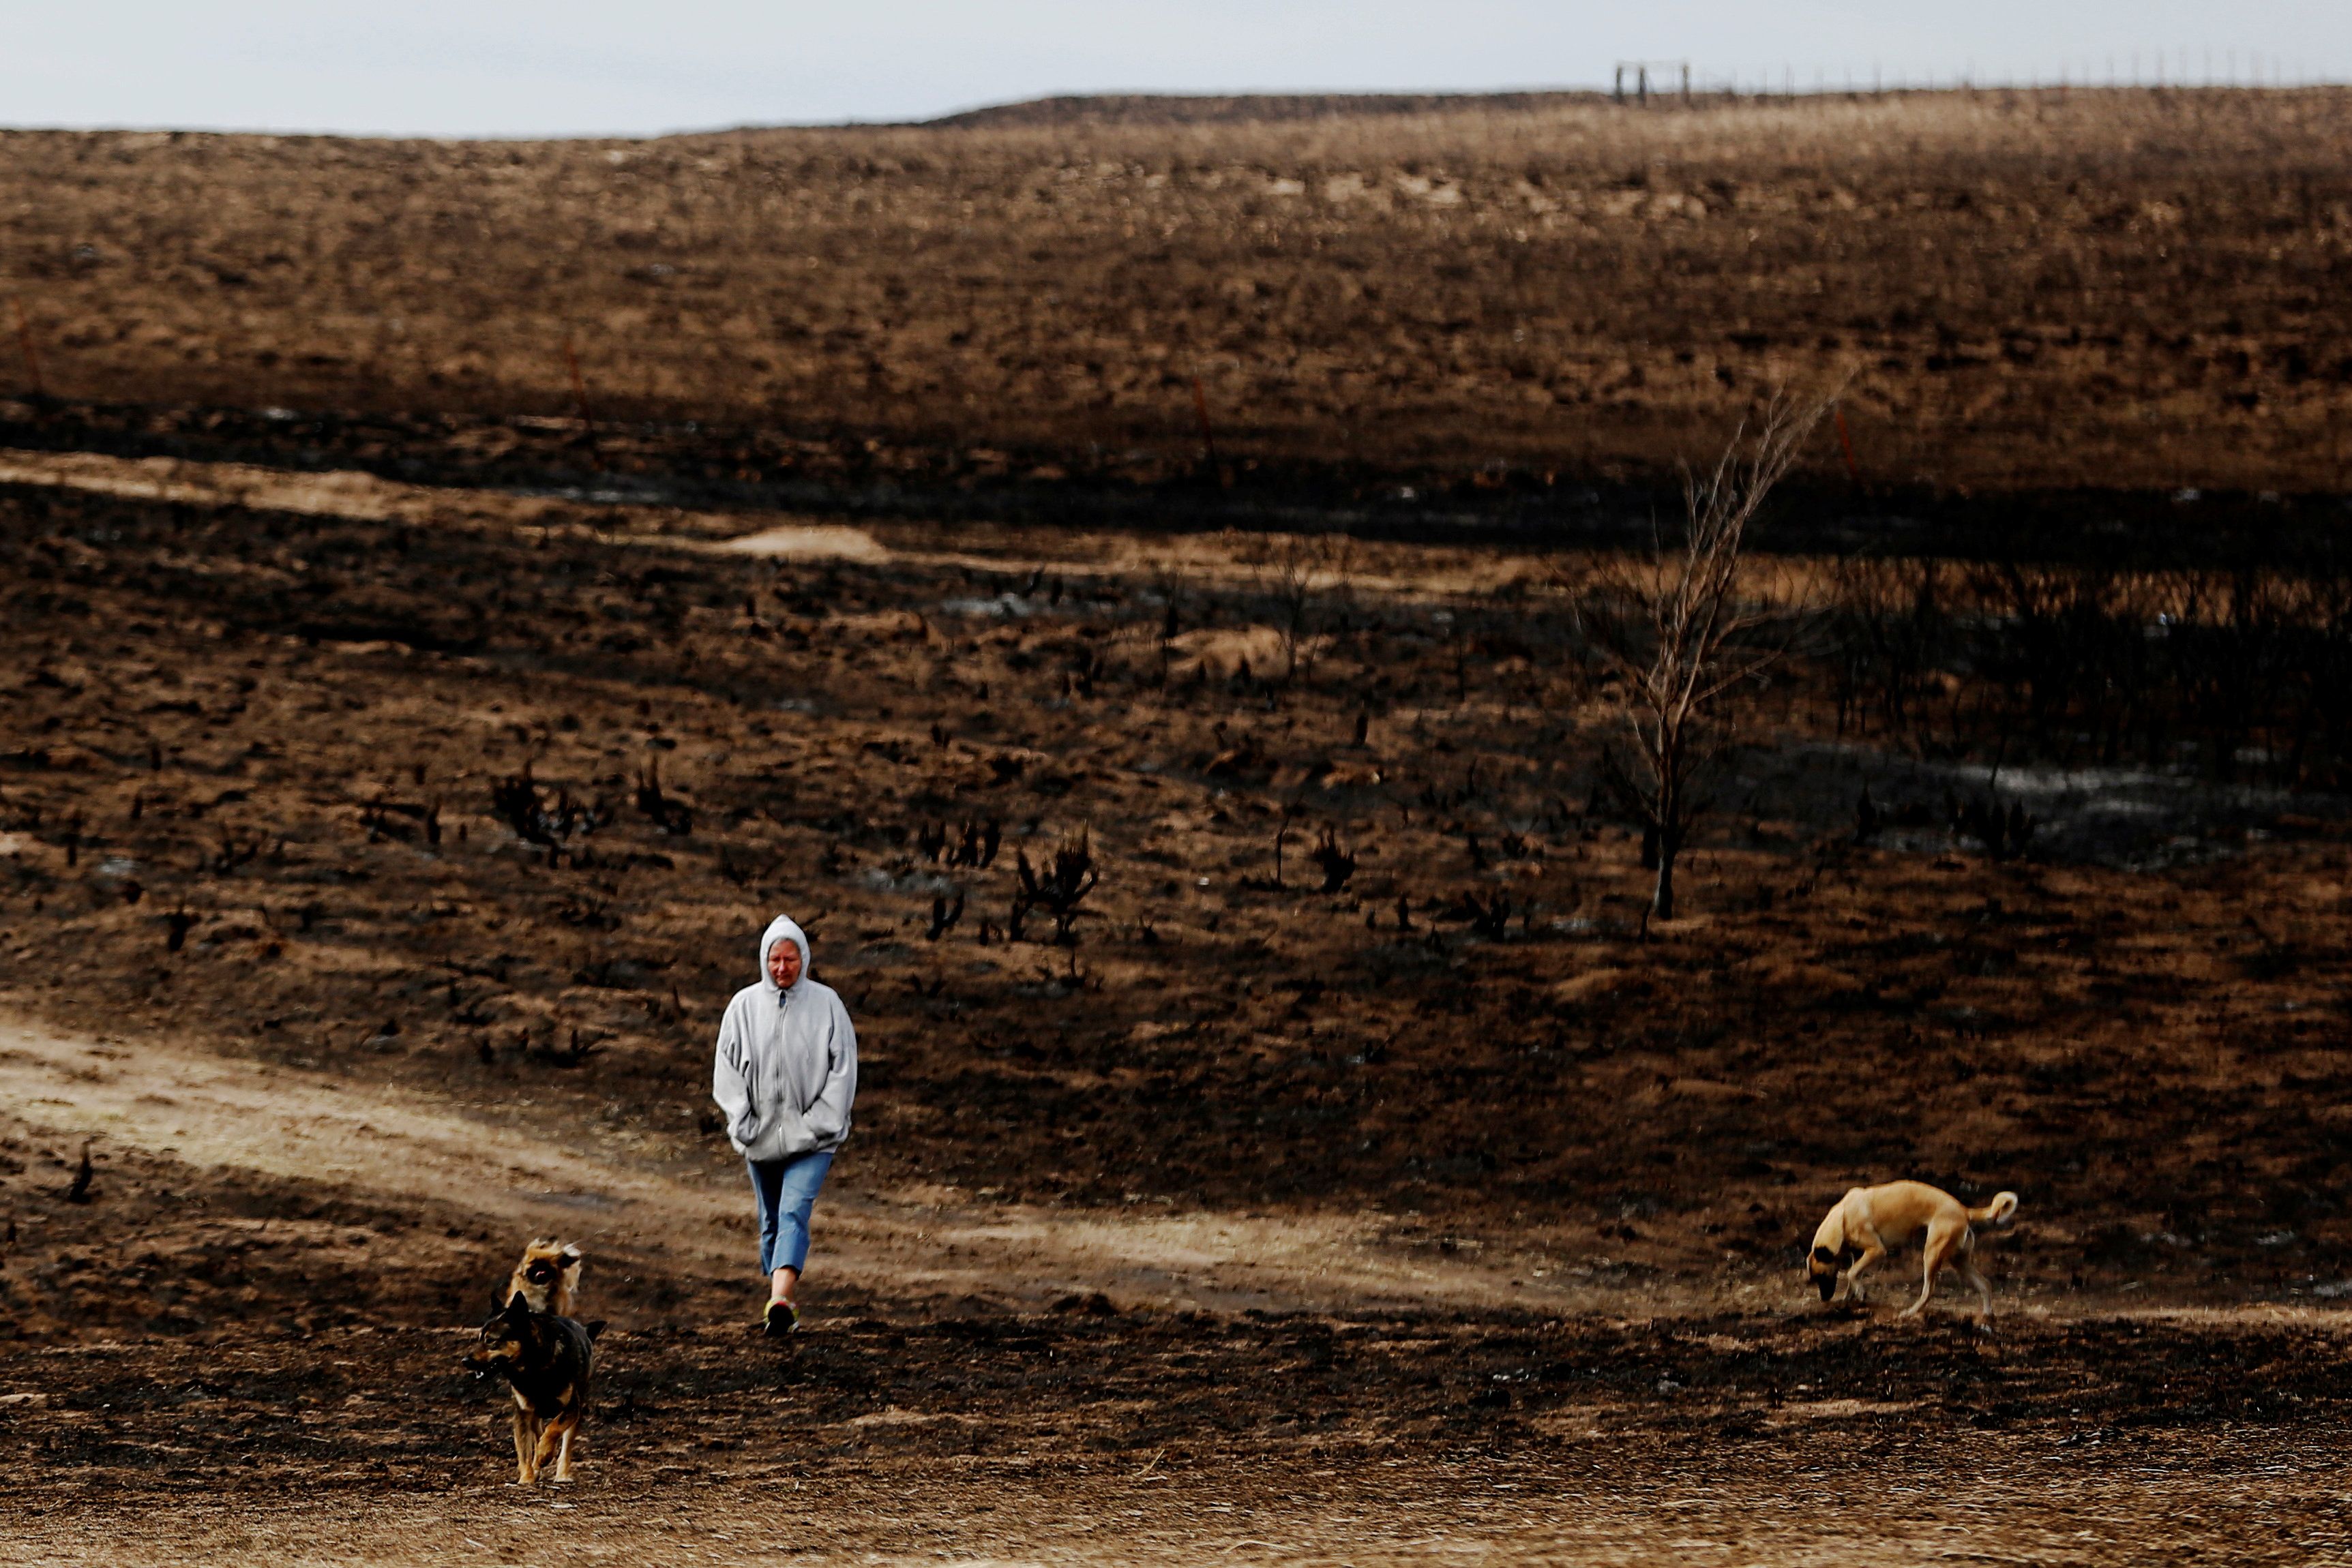 Rancher Nancy Schwerzenbach walks with dogs through pasture burned by wildfires near Lipscomb, Texas, U.S., March 12, 2017. REUTERS/Lucas Jackson